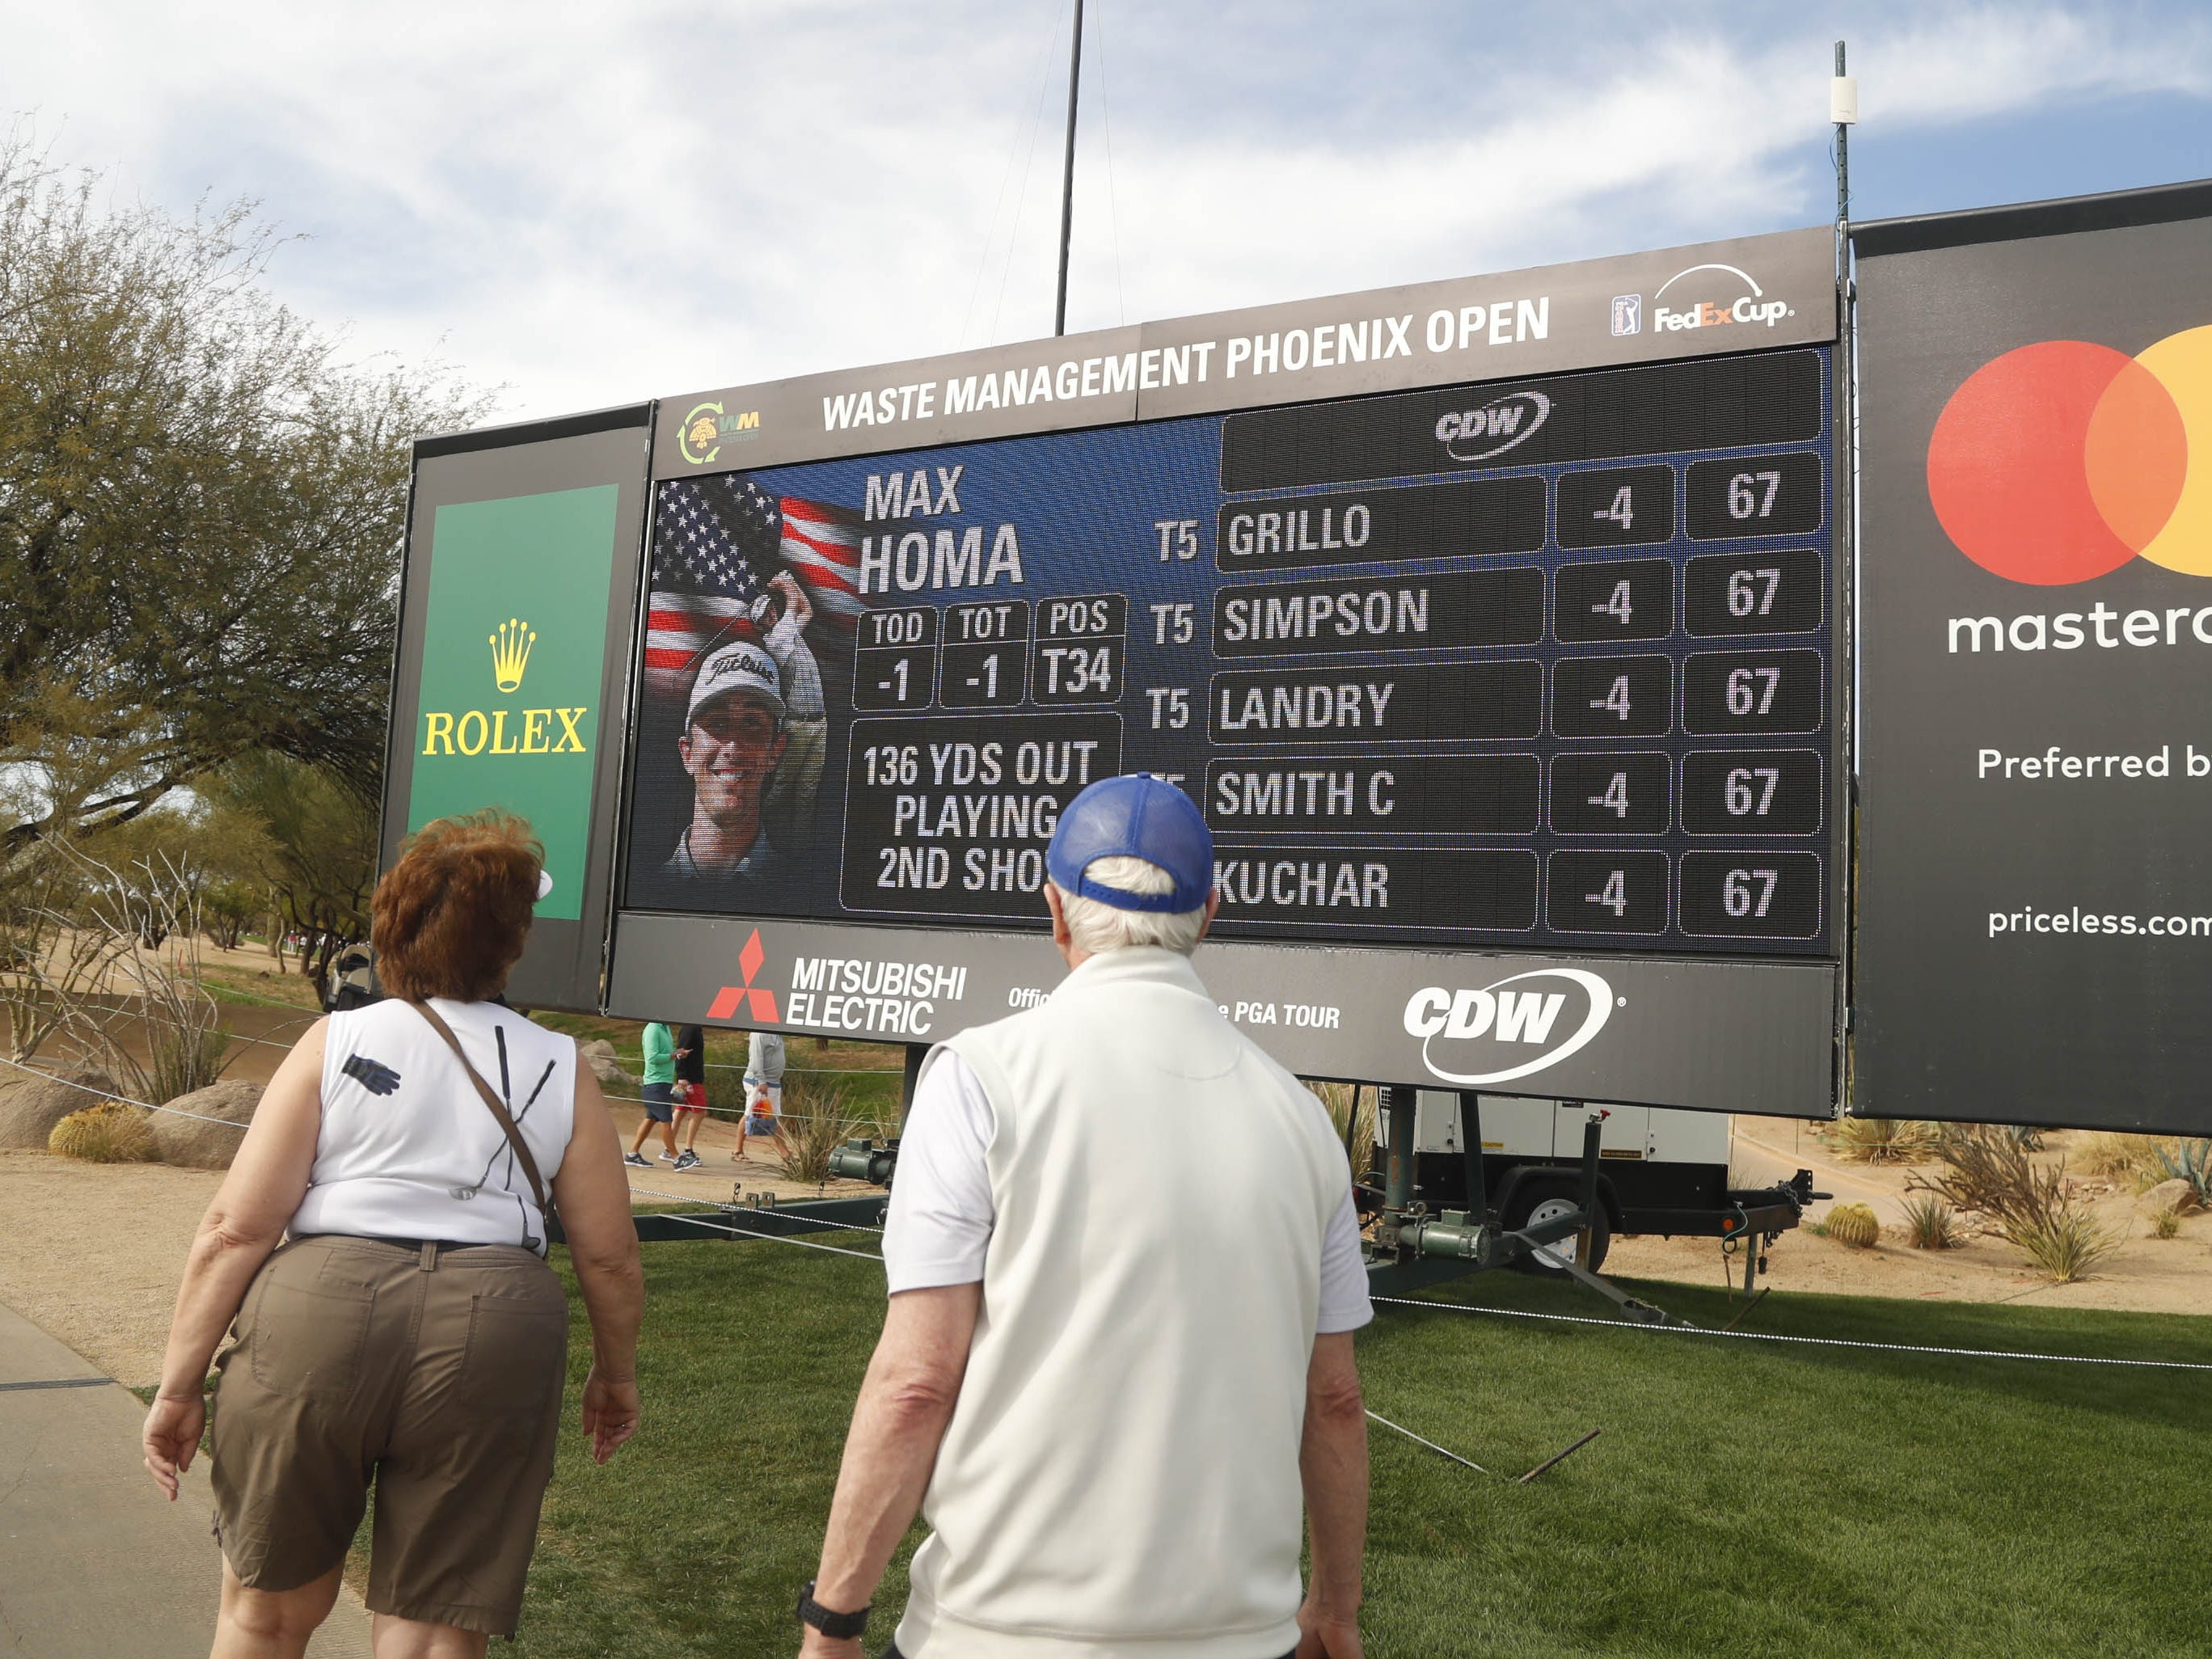 People make their way around the Waste Management Phoenix Open at TPC Scottsdale on the first round of the tournament in Scottsdale, Ariz. on January 31, 2019.